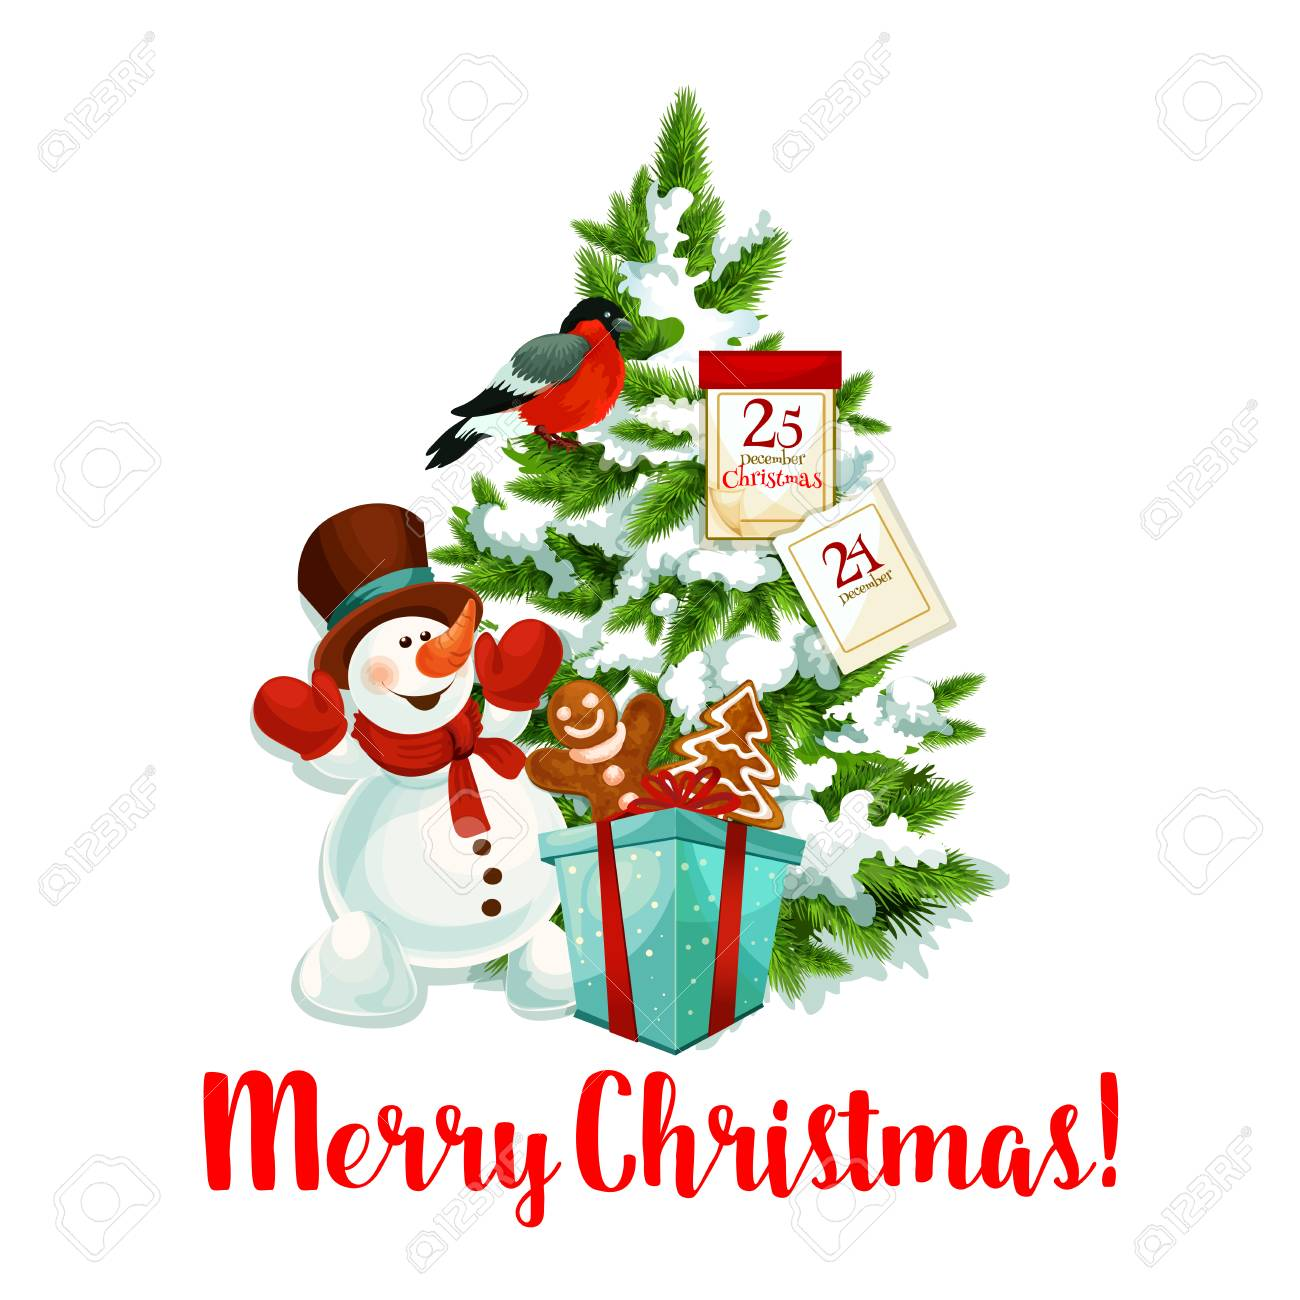 Christmas Icon.Merry Christmas Icon Of Snowman And Santa Gifts Under Christmas